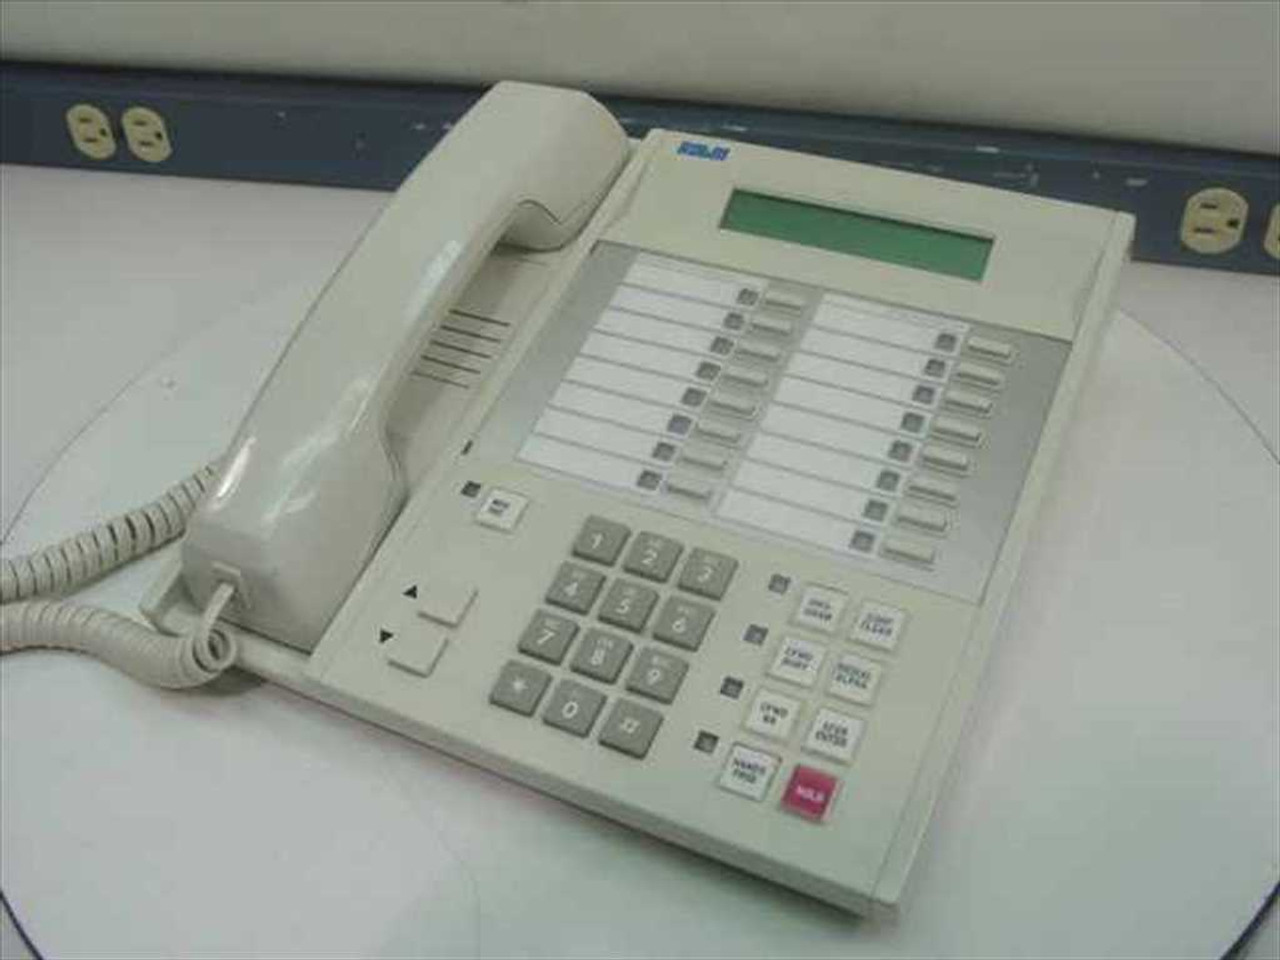 rolm 9225slhk digital telephone set rolmset 9225 white rh recycledgoods com Conference Room Telephone Systems Hotel Guest Room Telephones